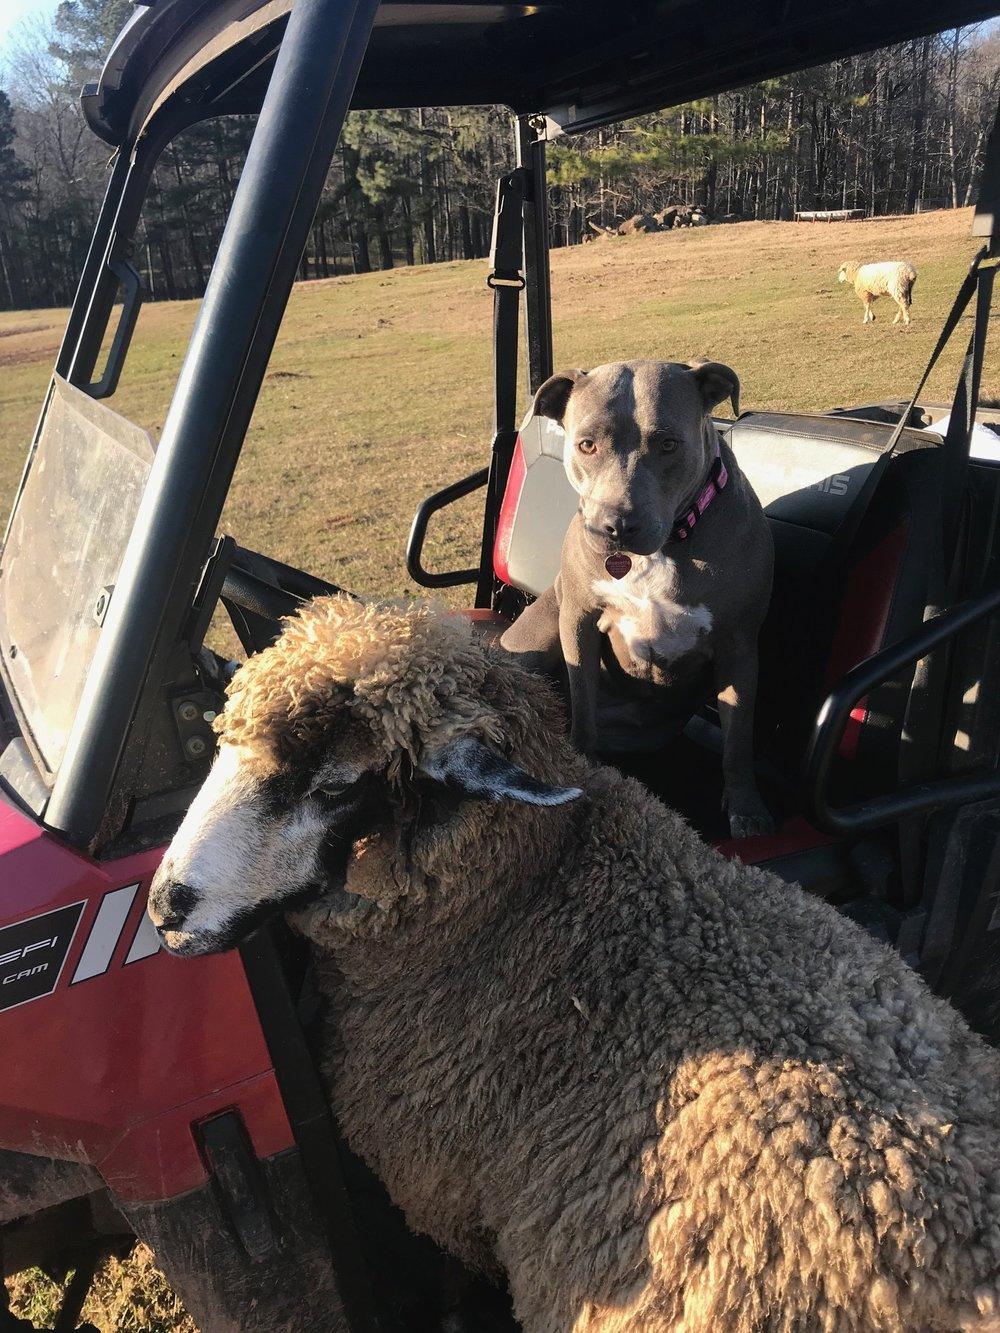 The breed is curious and gregarious. Pollyanna's fleece is getting in the way of her Polaris ride., plus the dog is on her seat!